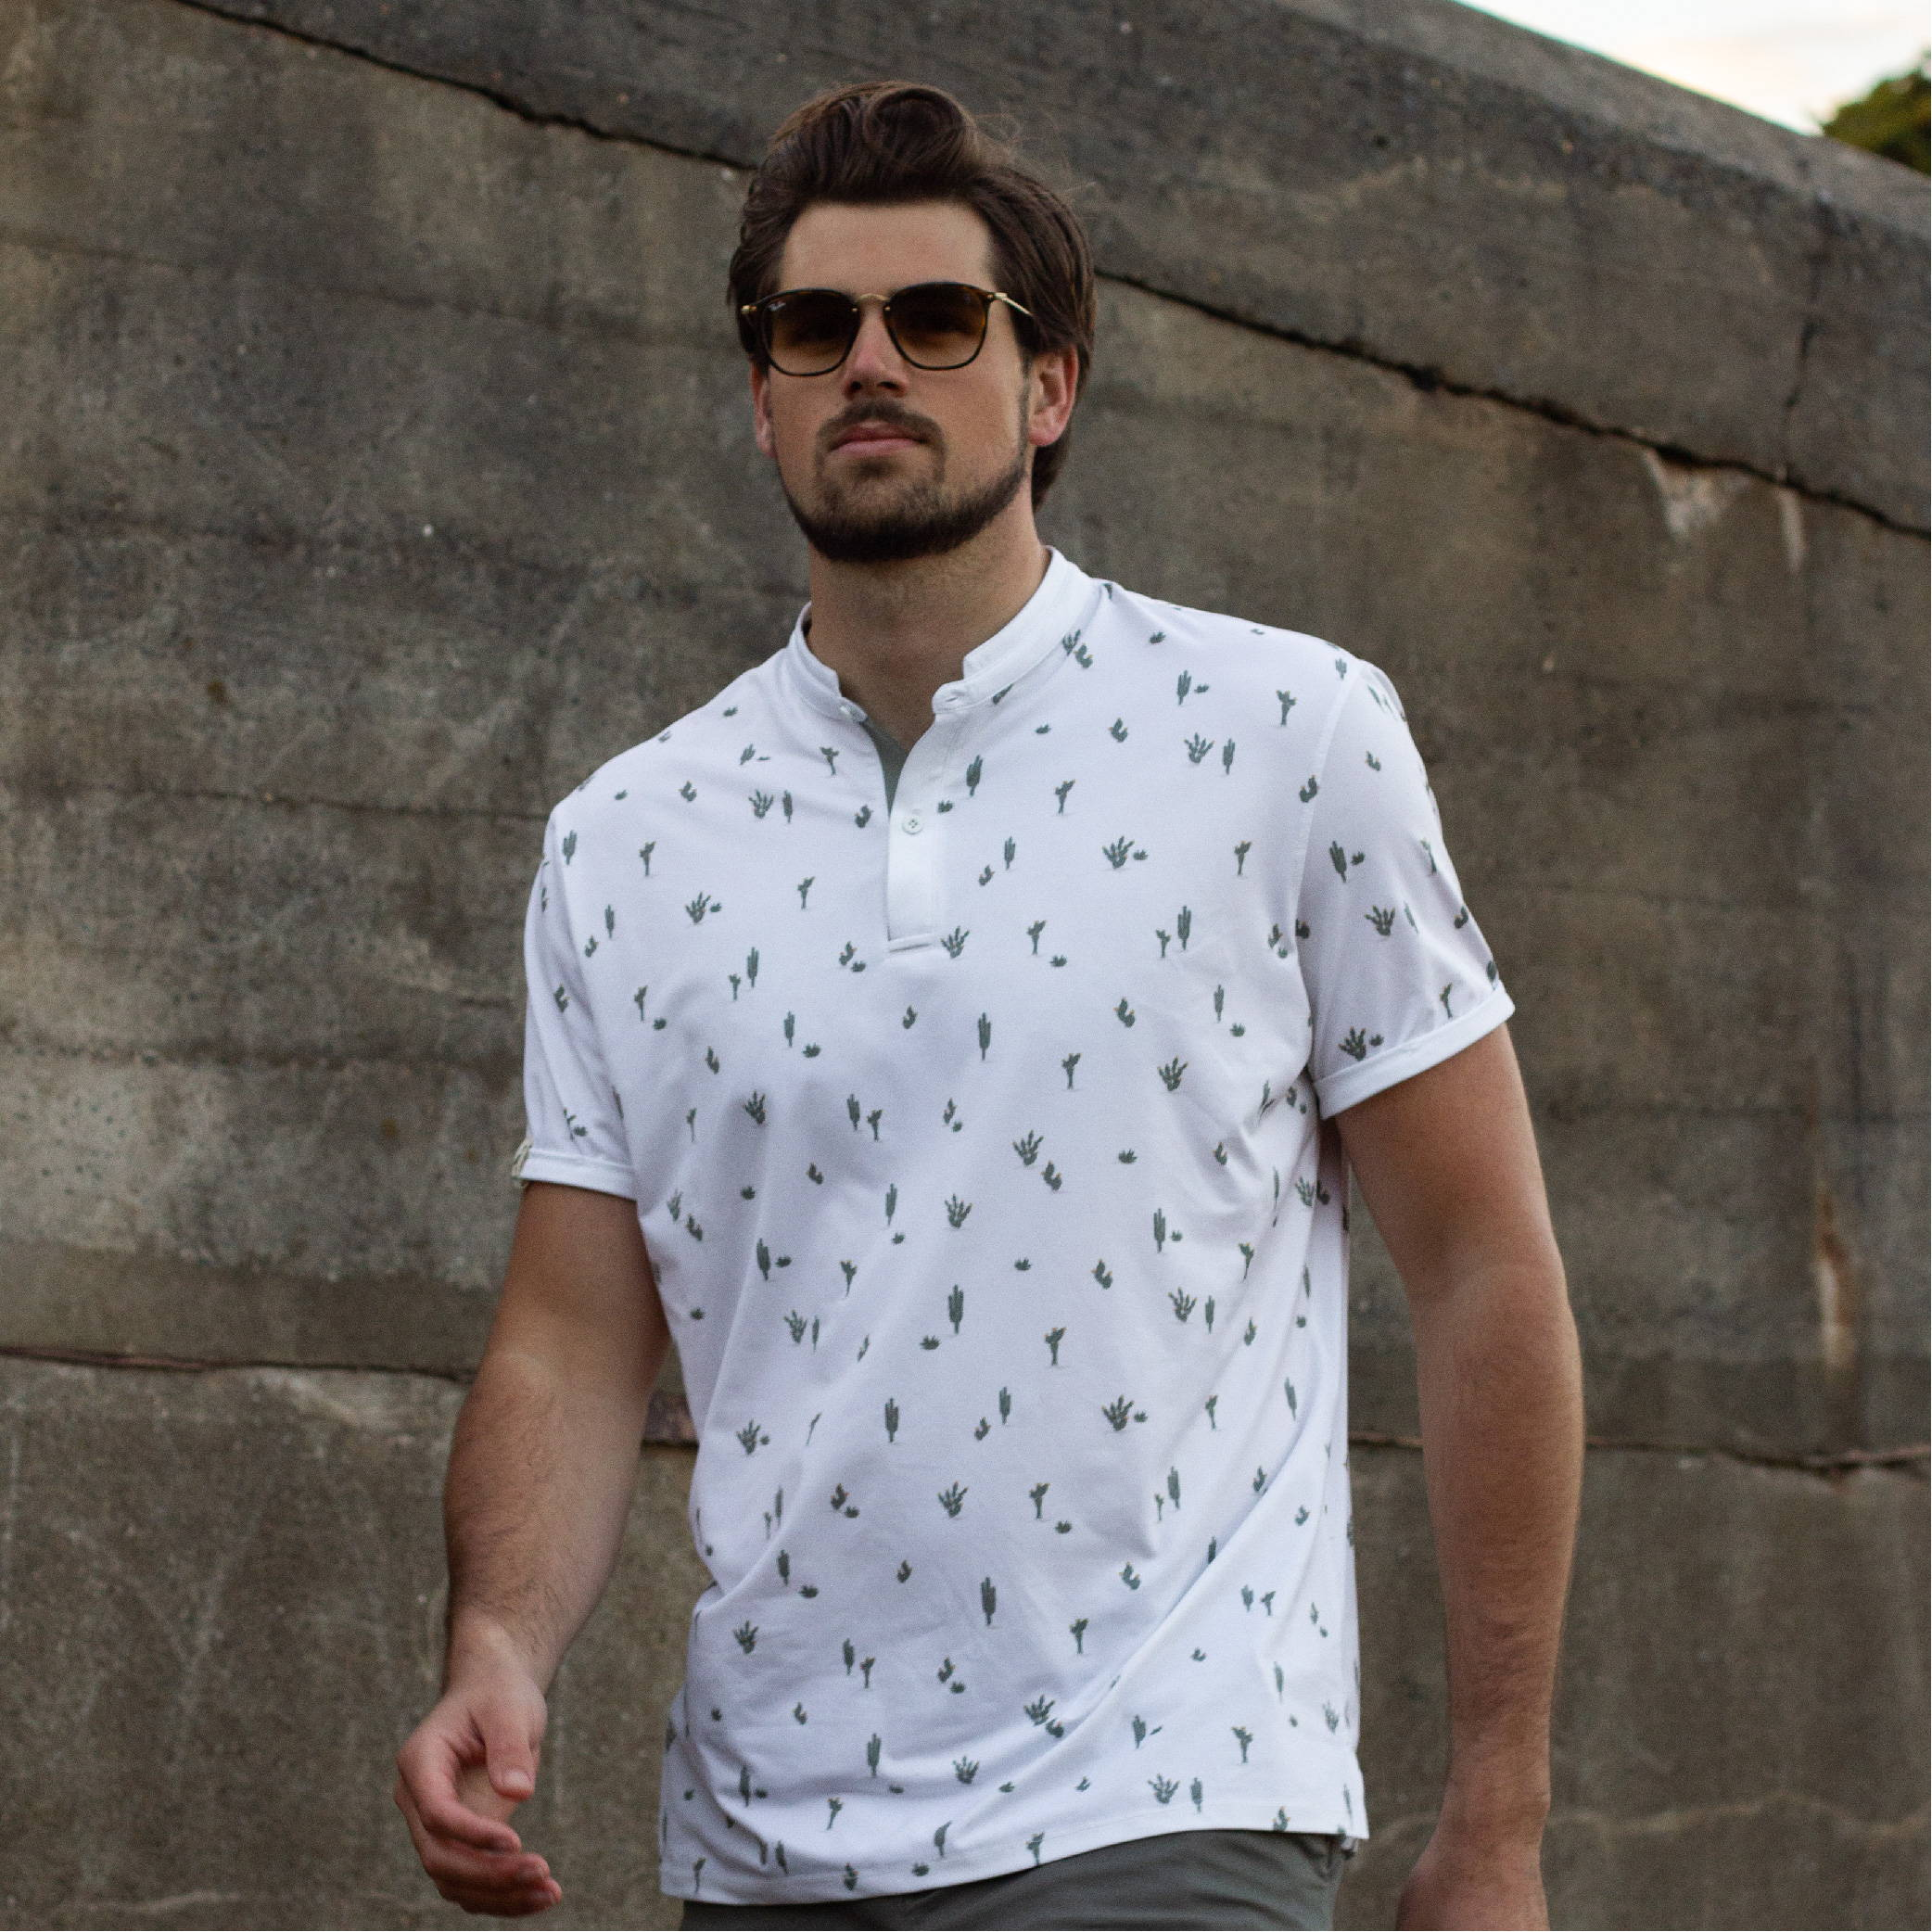 MANTRA The Cacti Polo - sustainable mens polo made in the USA from repurposed materials